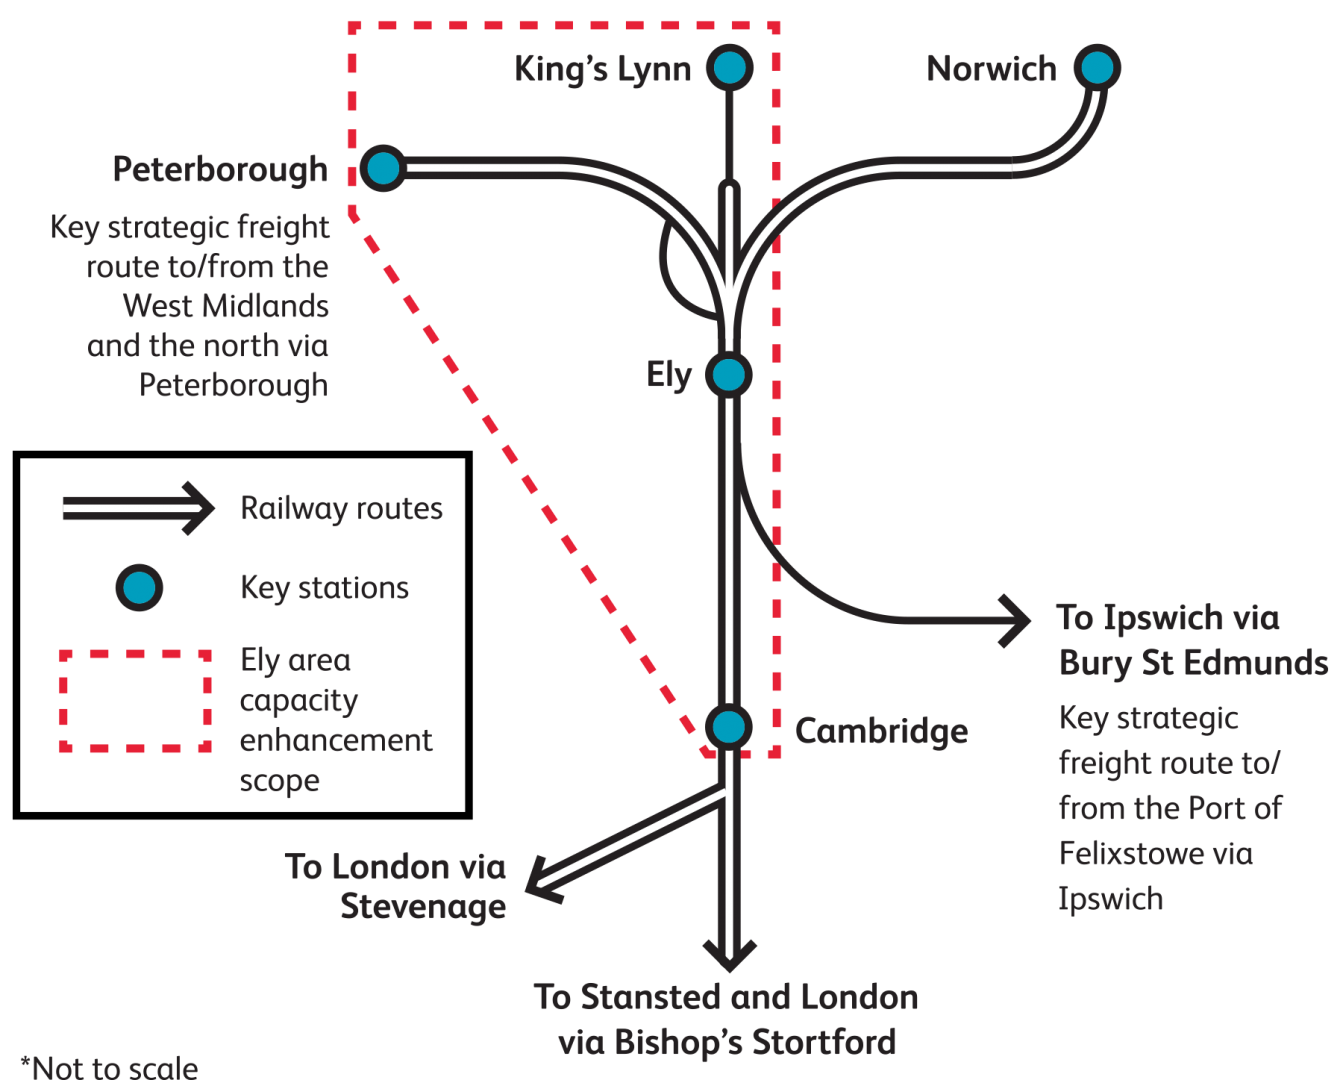 map of ely area tracks